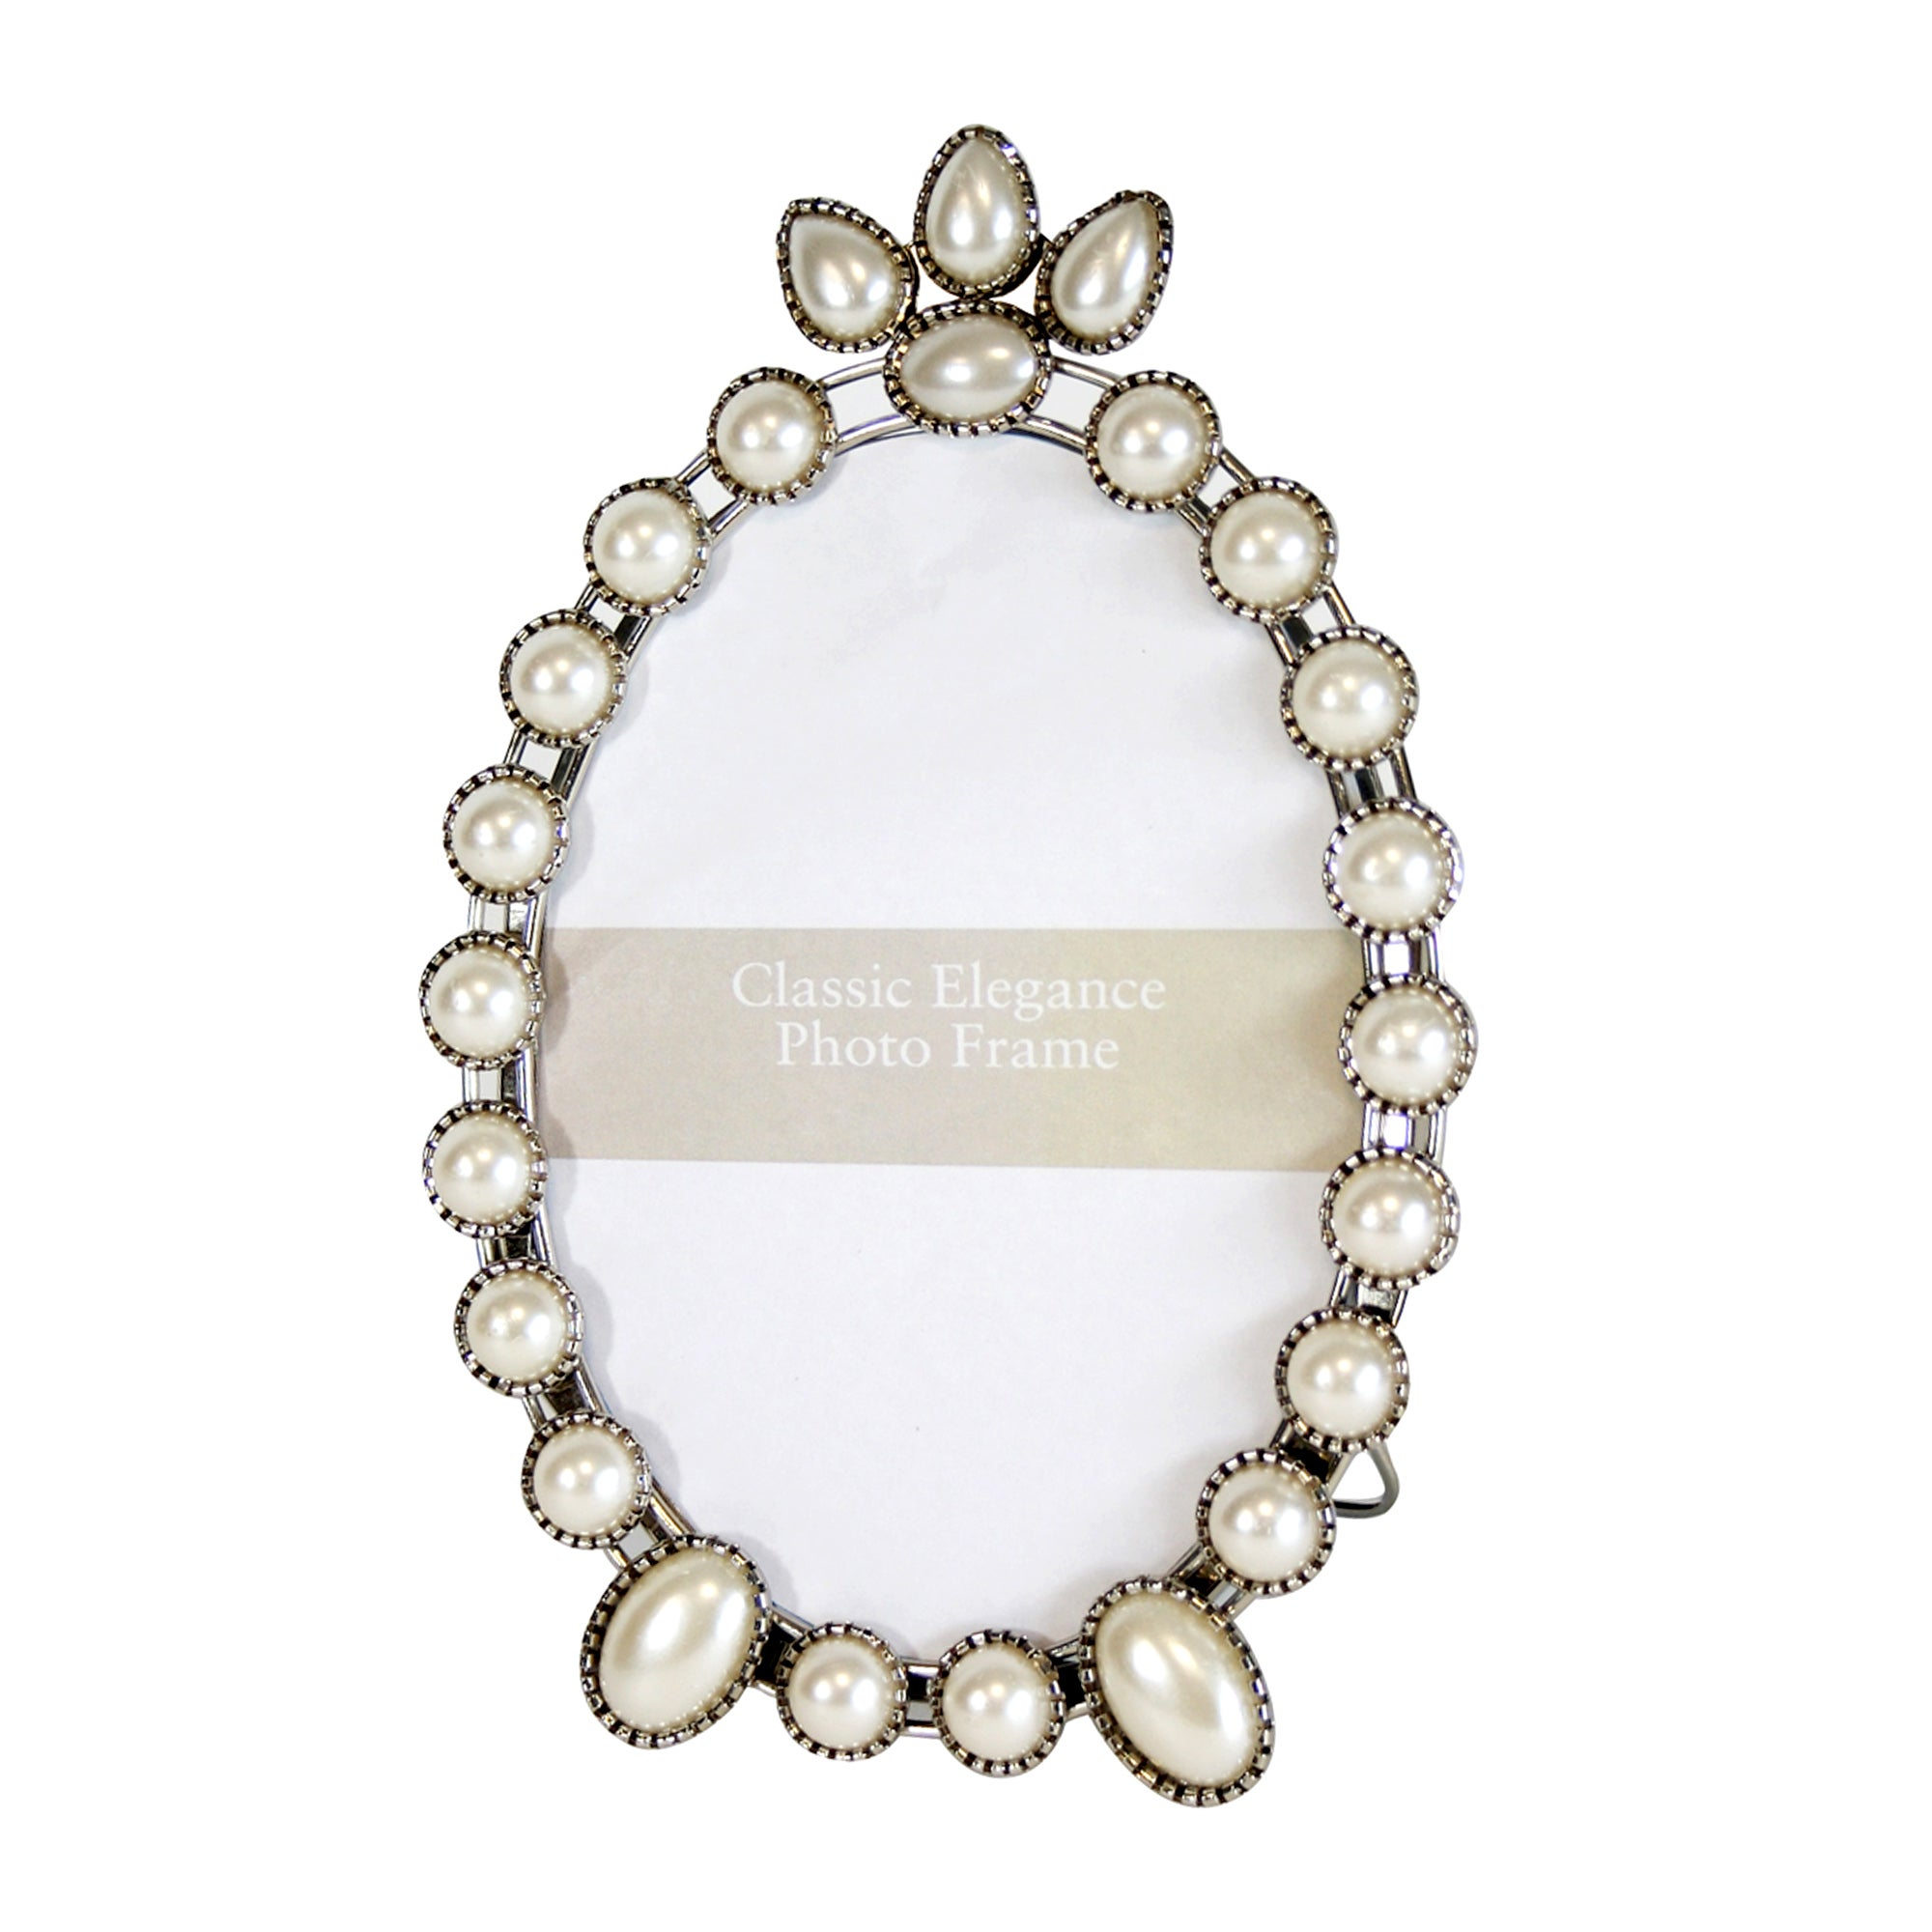 Classic Elegance Collection Pearlised Oval Frame